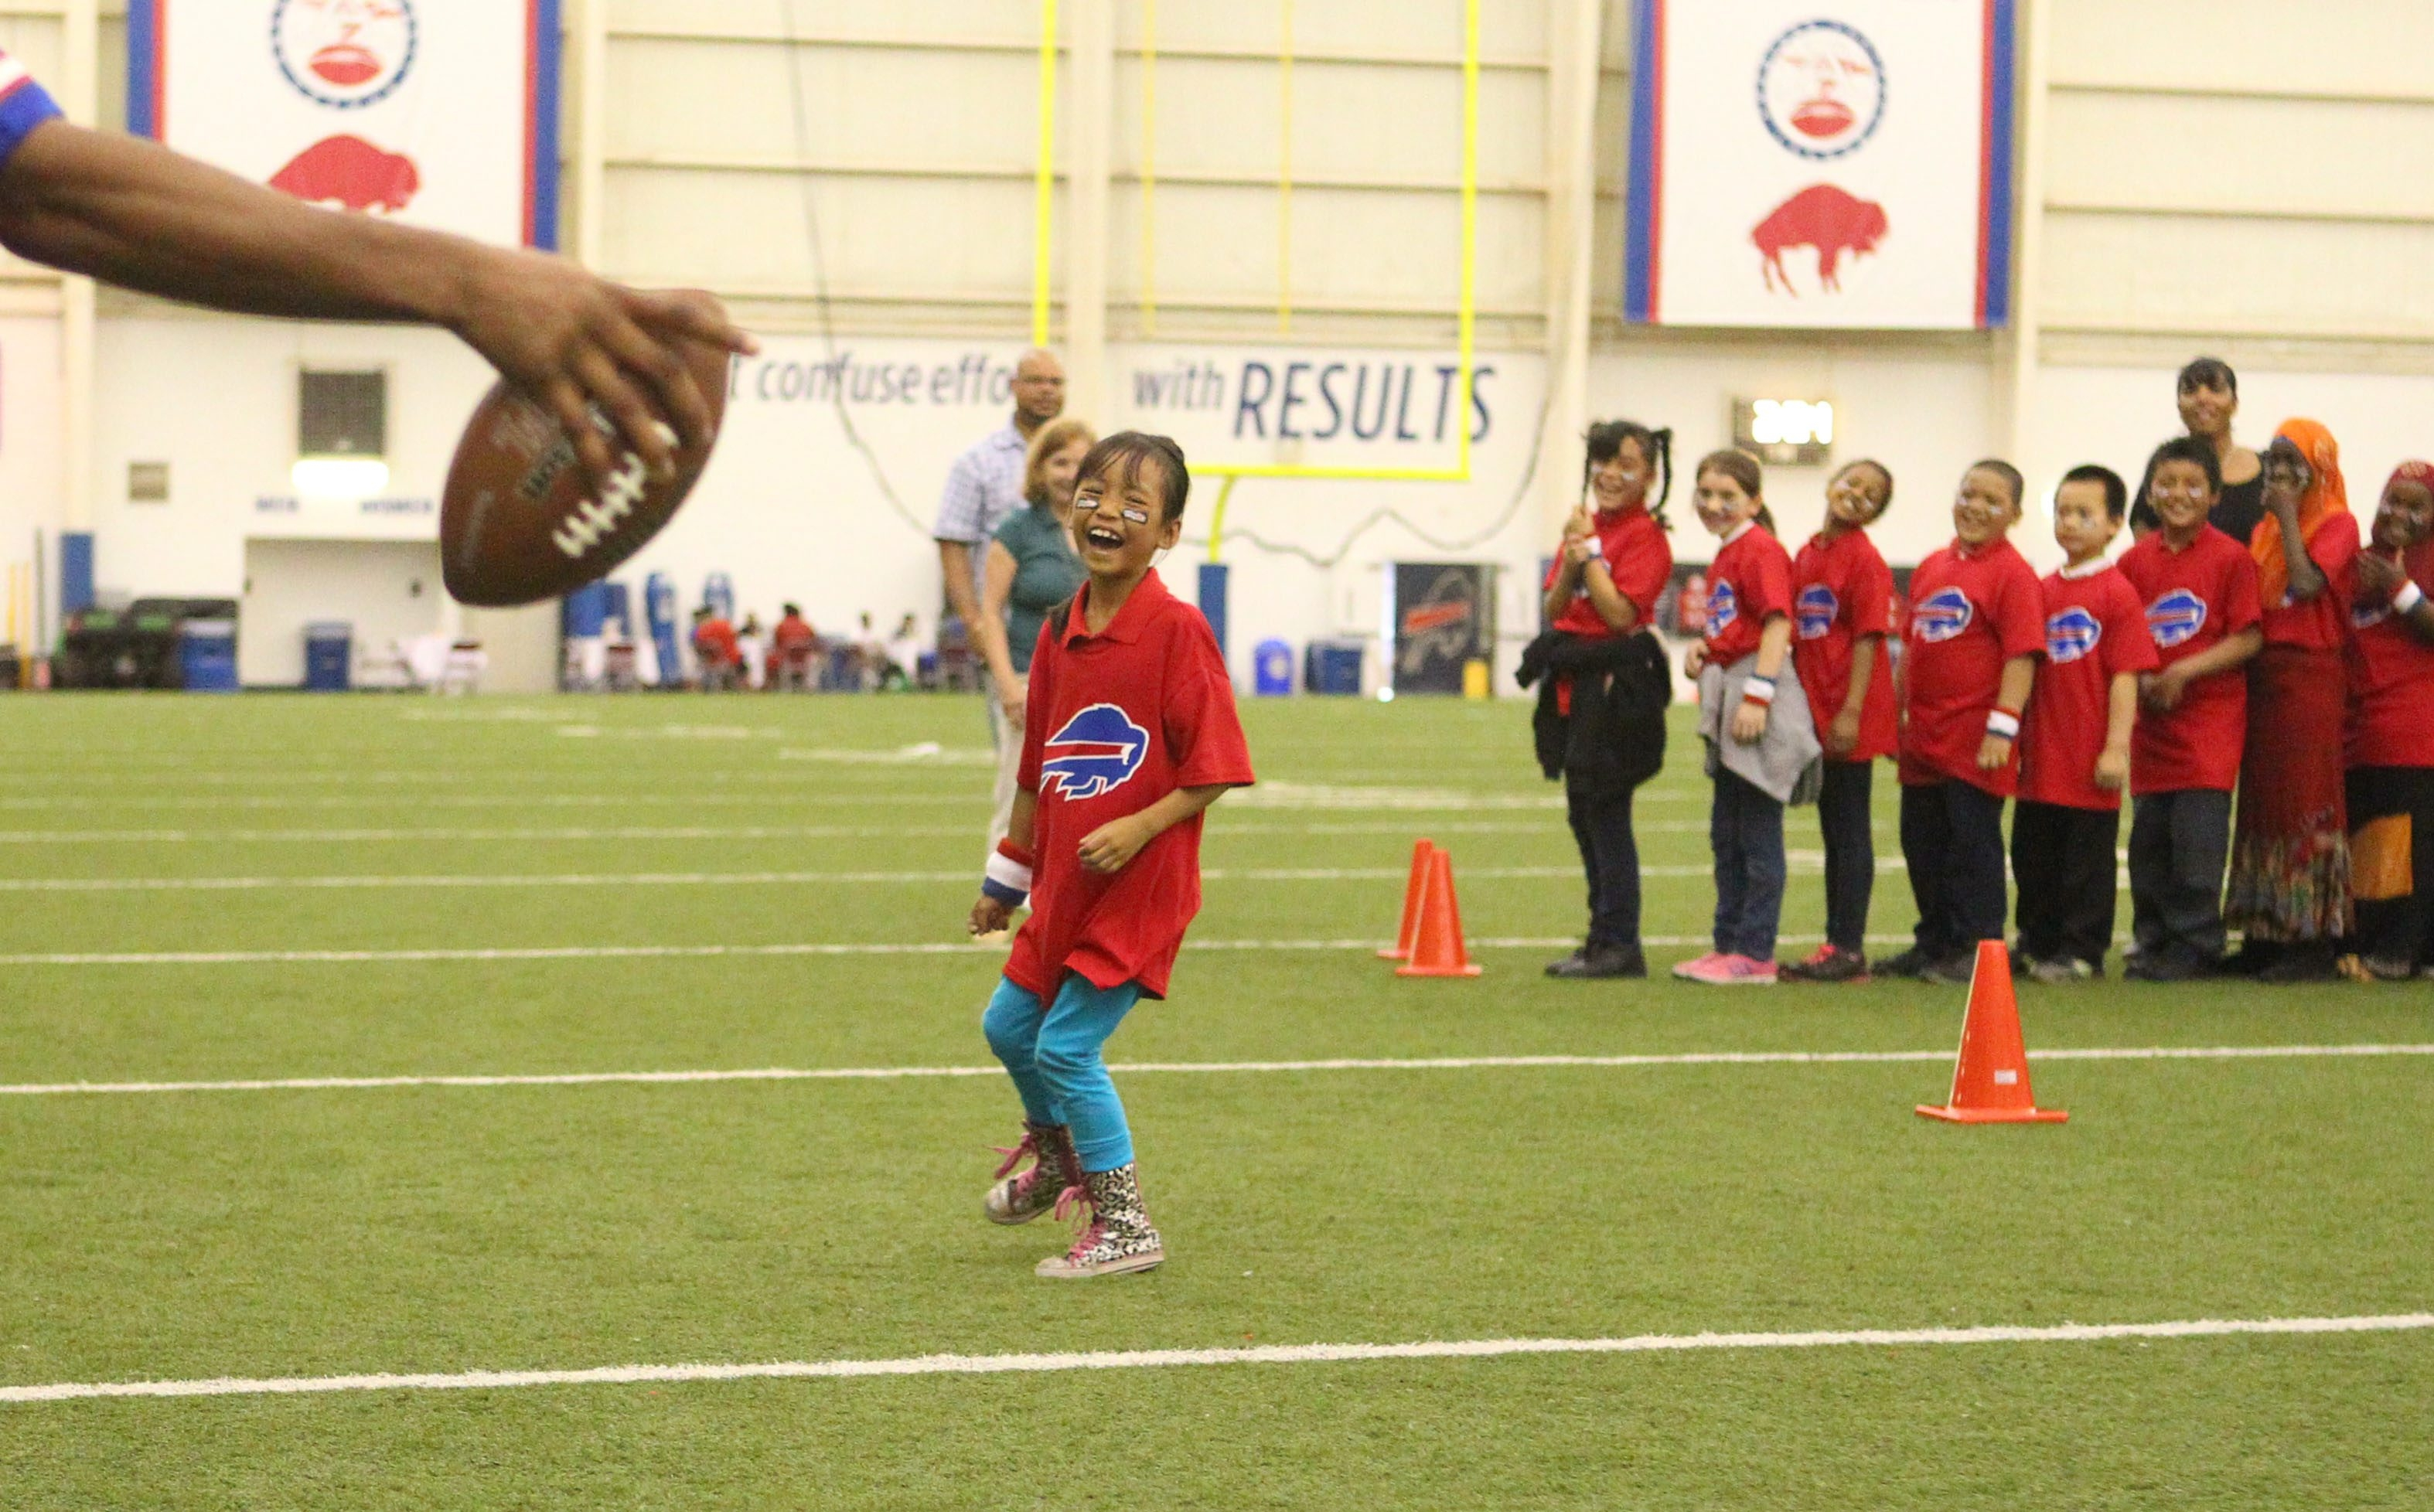 Third-graders from Buffalo Public School No. 18 have some fun running through drills with Buffalo Bills players Tuesday at Ralph C. Wilson Field House in Orchard Park.